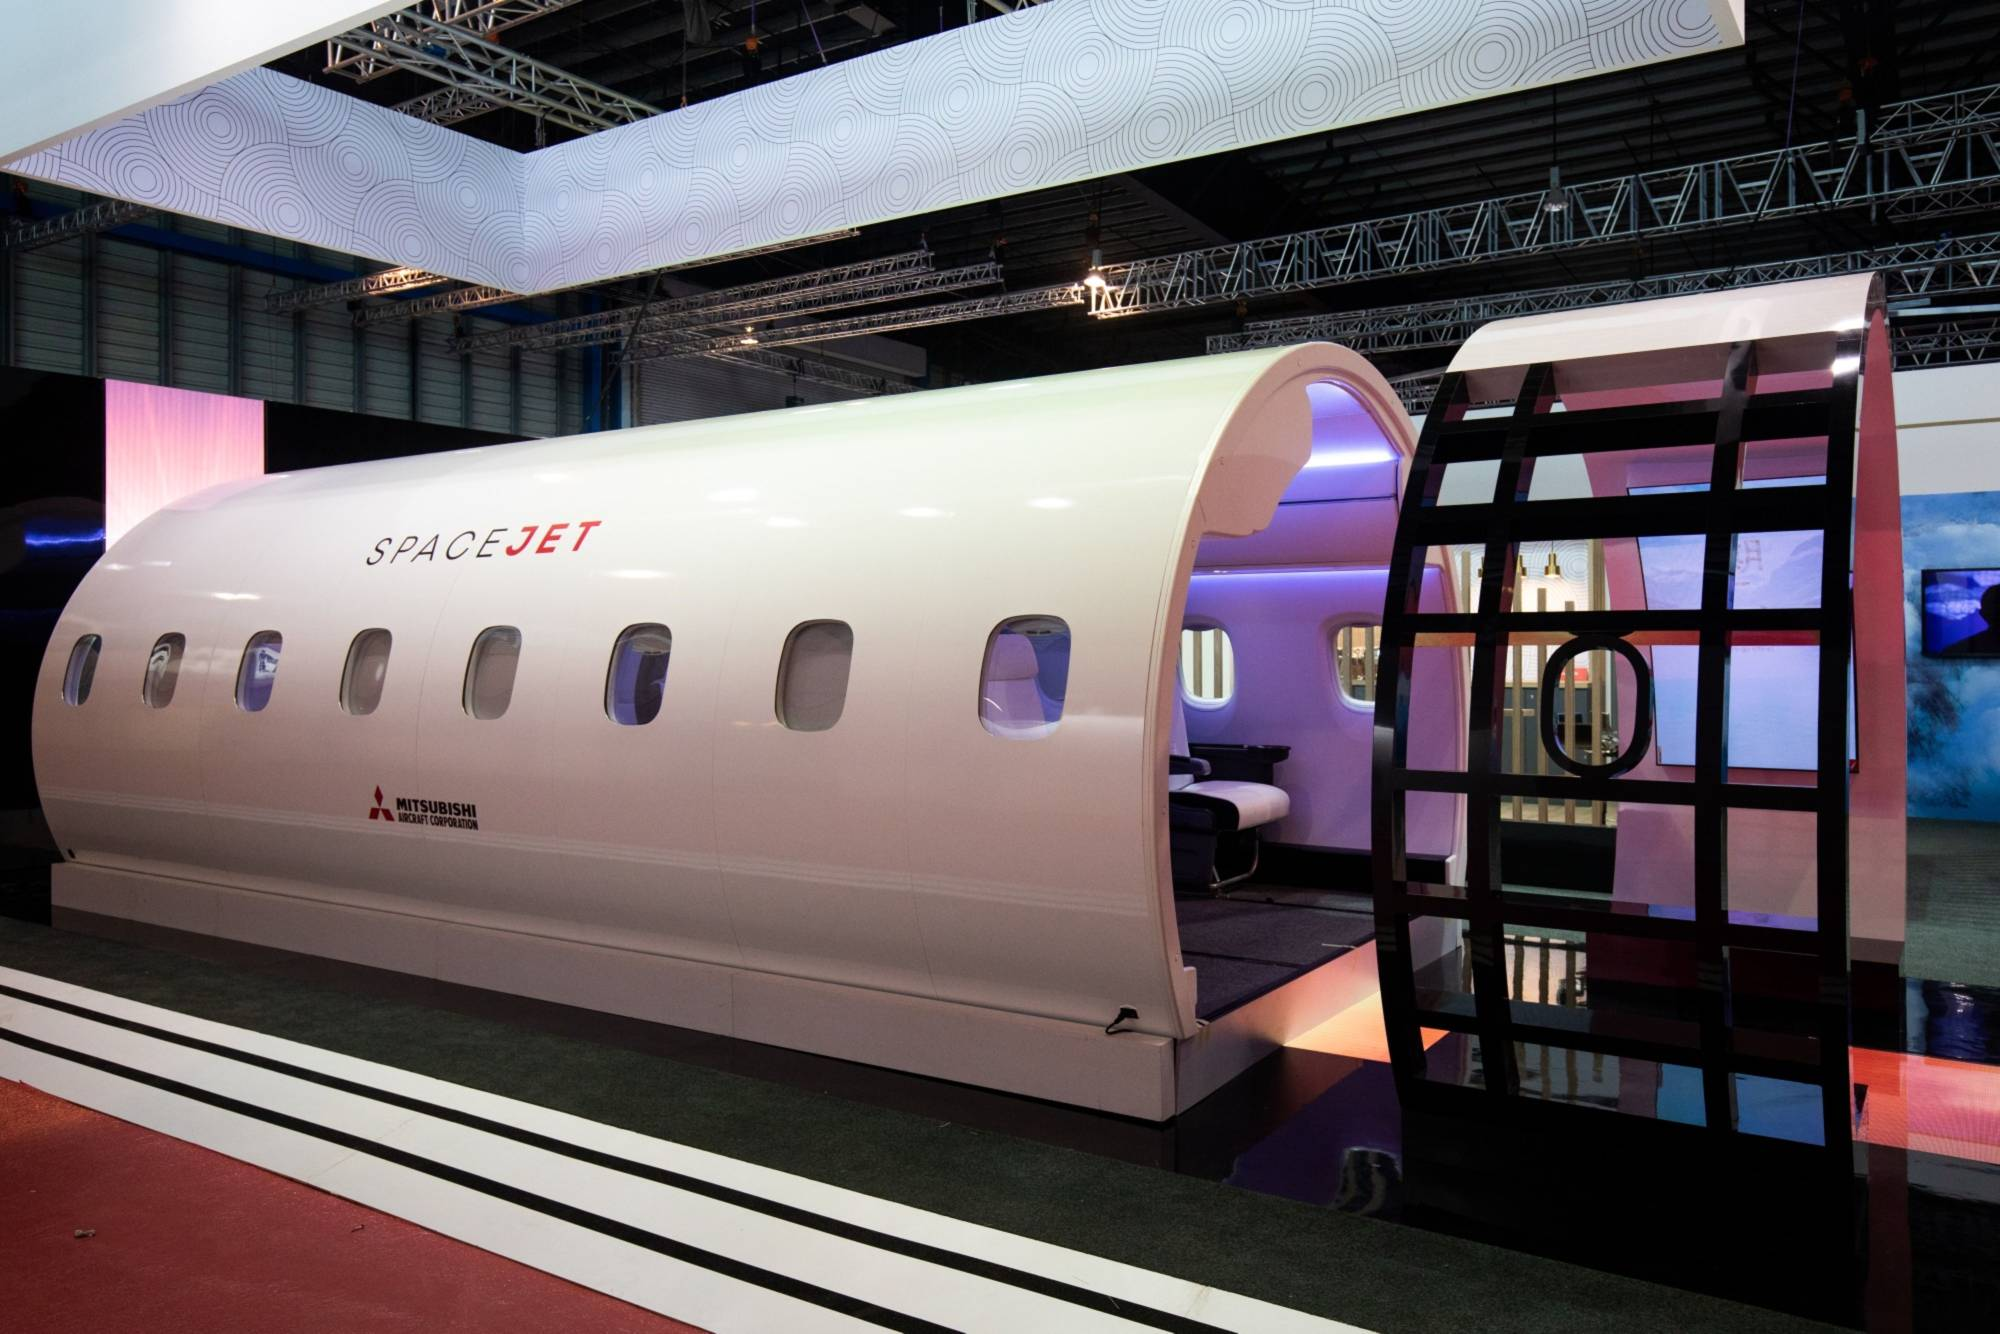 A model of SpaceJet regional jet, manufactured by Mitsubishi Heavy Industries Ltd., stands on display at the company's booth during a media preview day at the Singapore Airshow held at the Changi Exhibition Centre in Singapore February. | BLOOMBERG